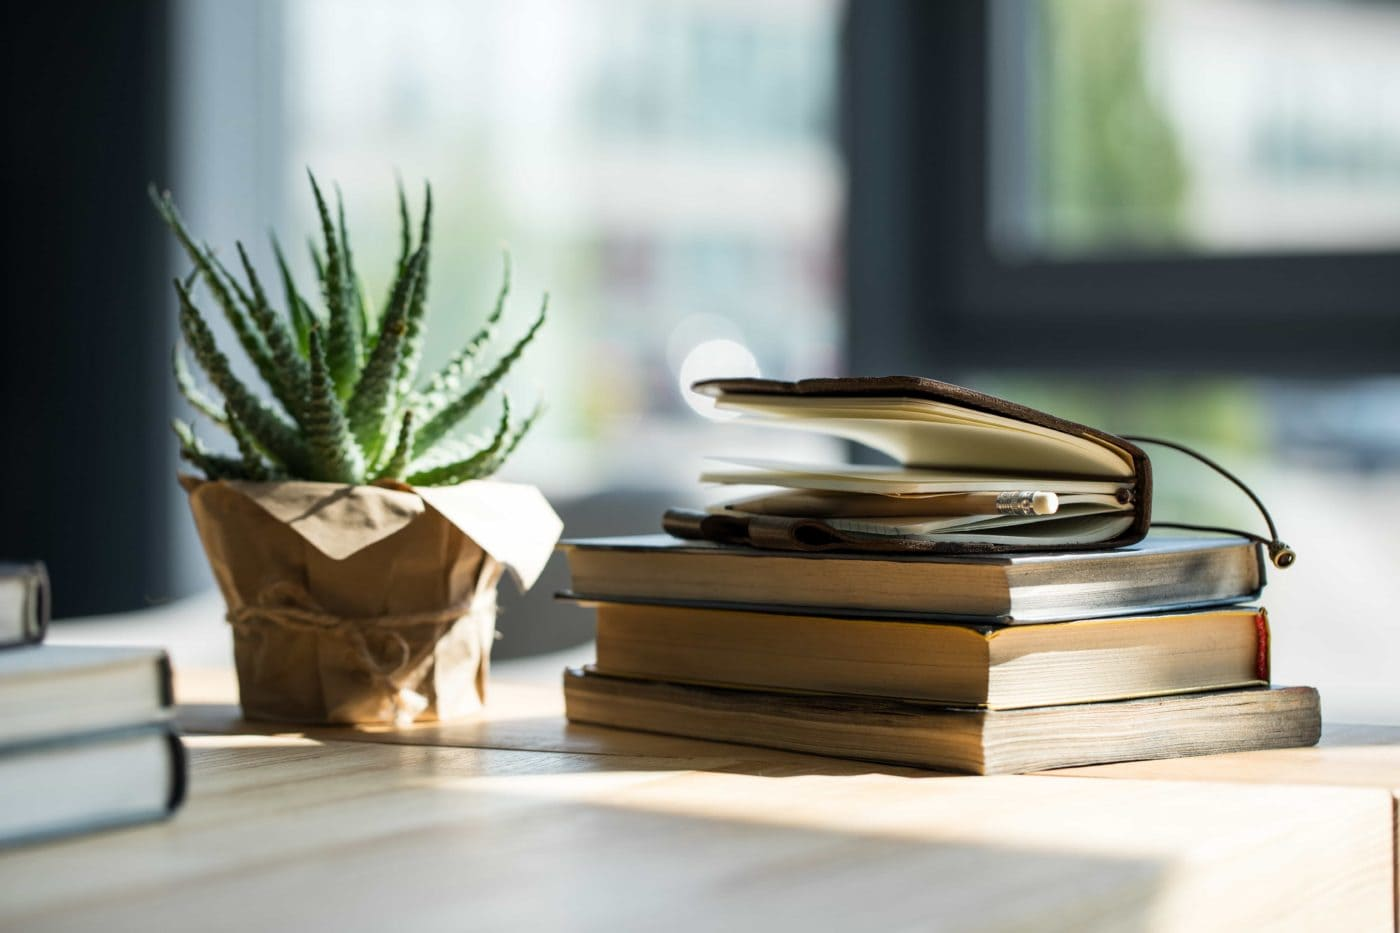 Close-up view of books, notebook with pencil and potted plant on wooden table